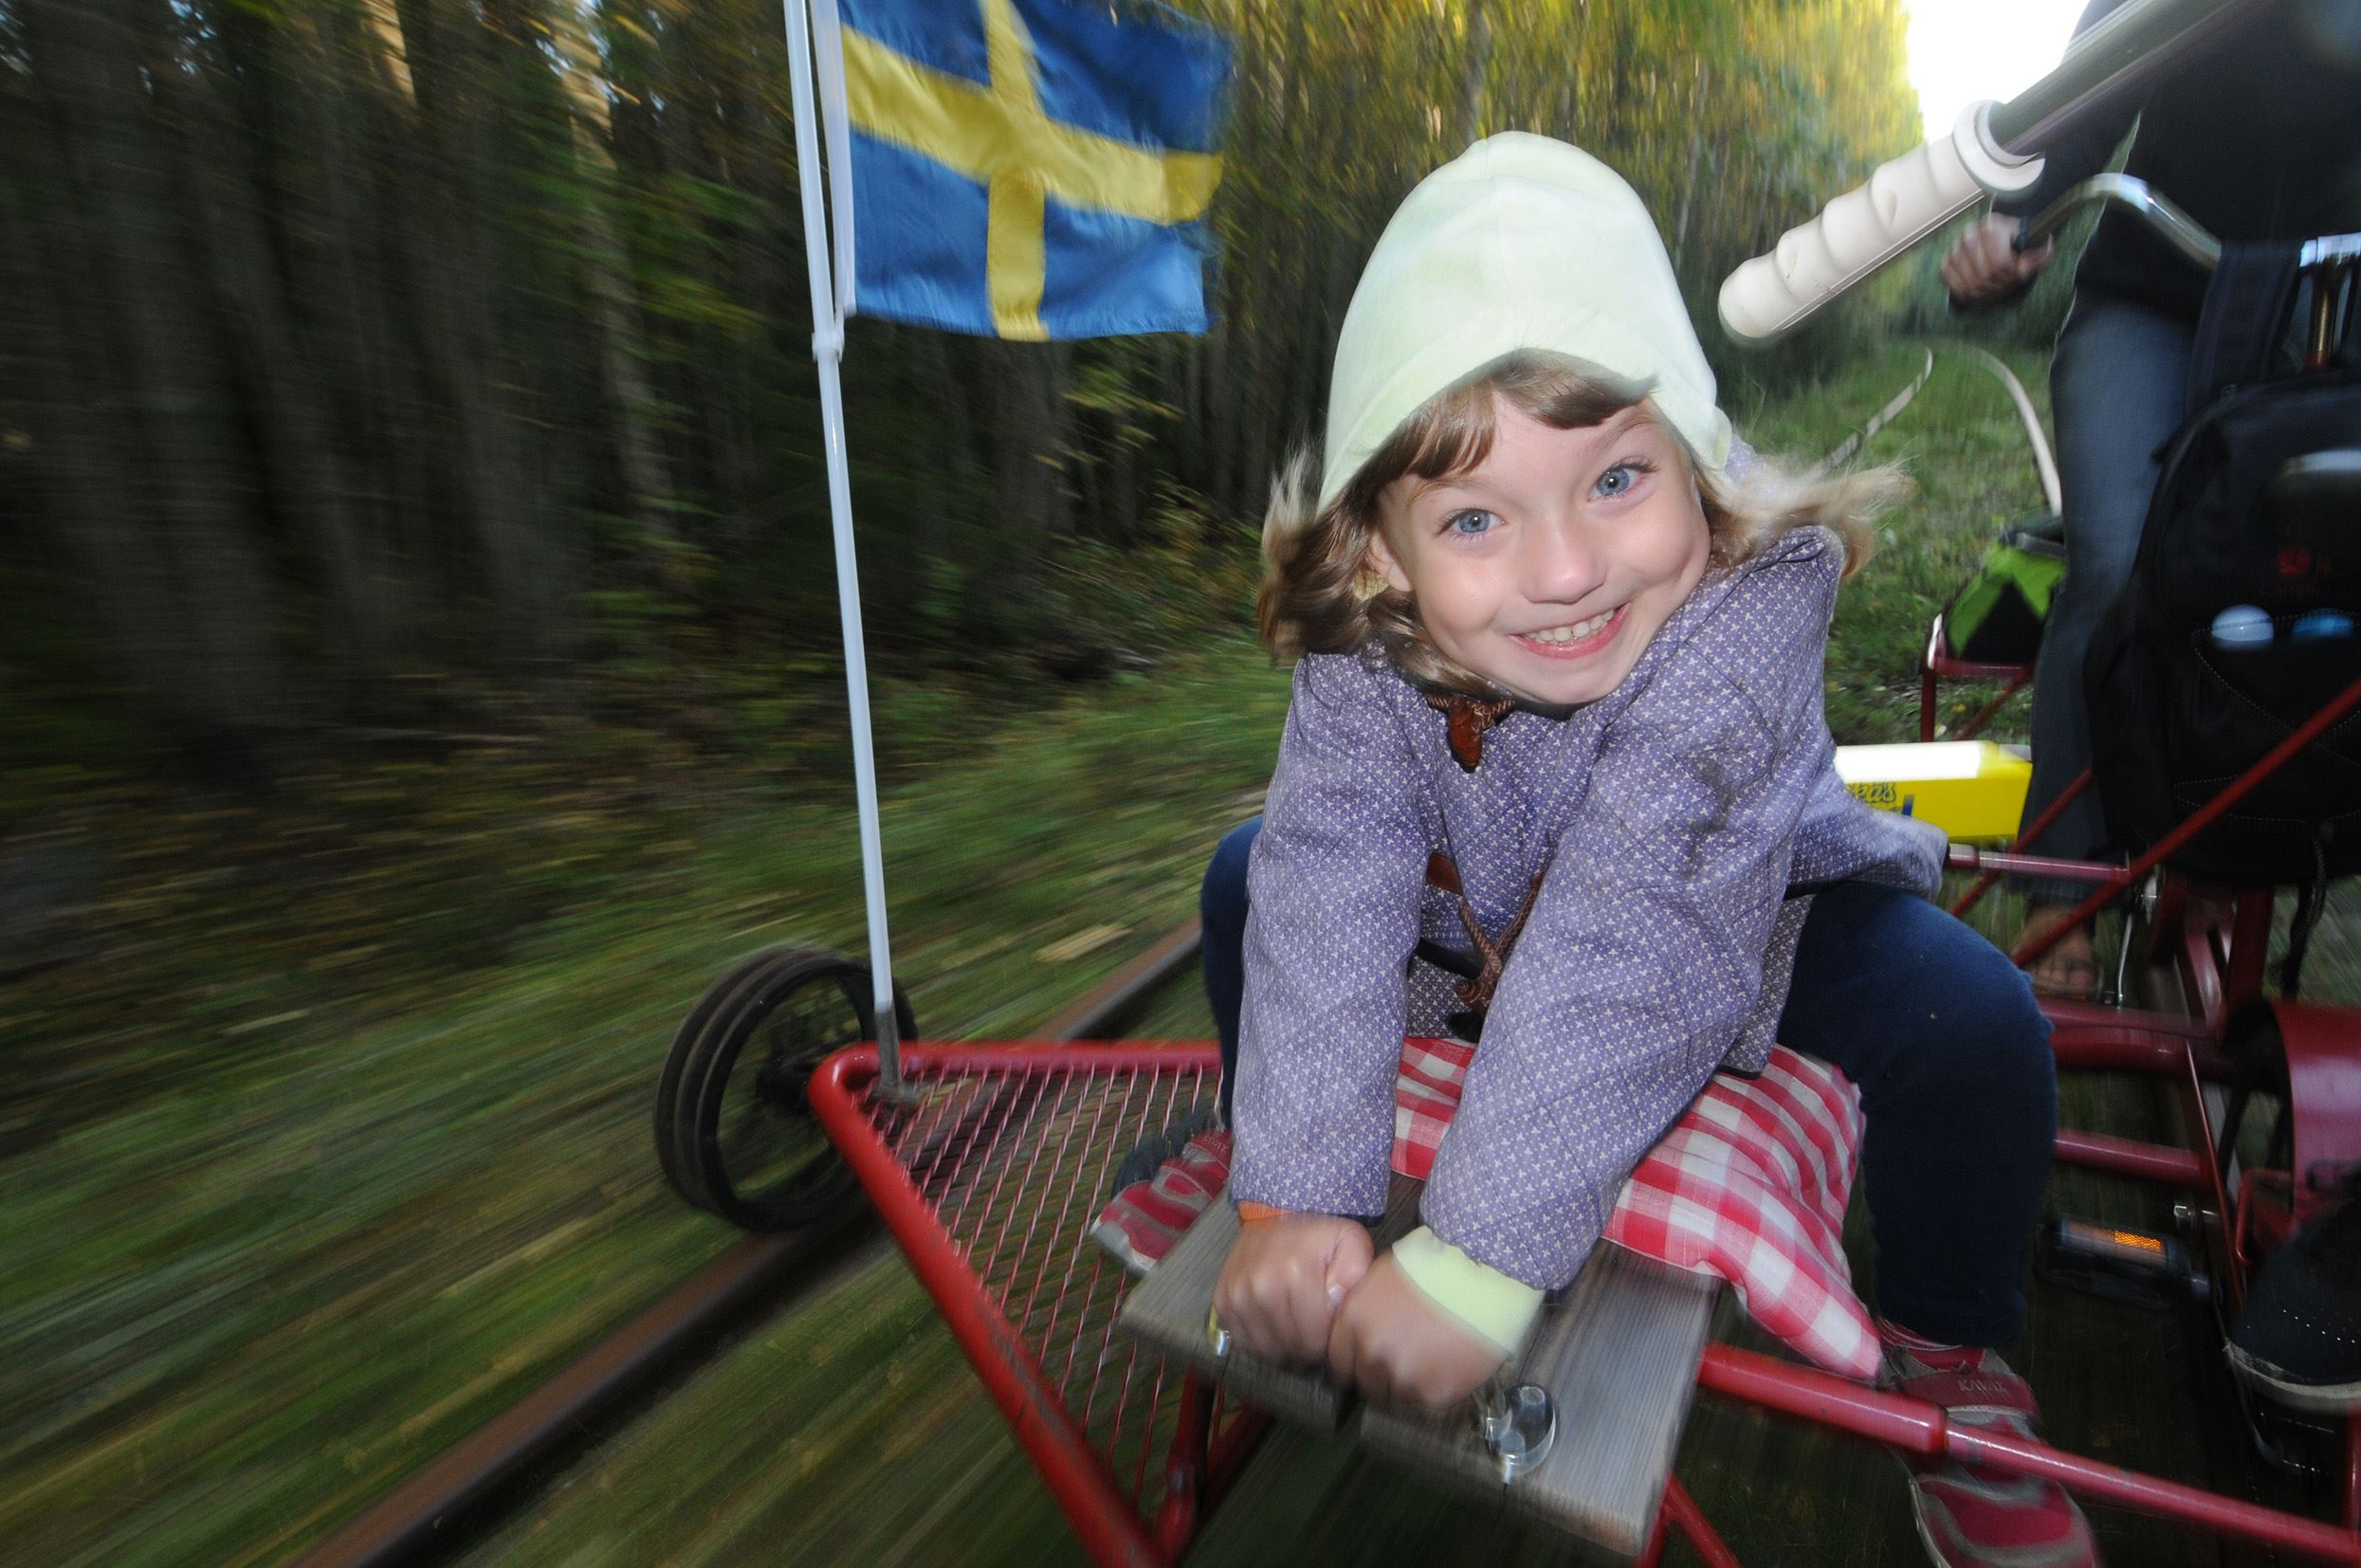 Paul Bogatir,  © Dellenbanan - Paul Bogatir, Rail trolley riding on Dellenbanan (the Dellen railroad)